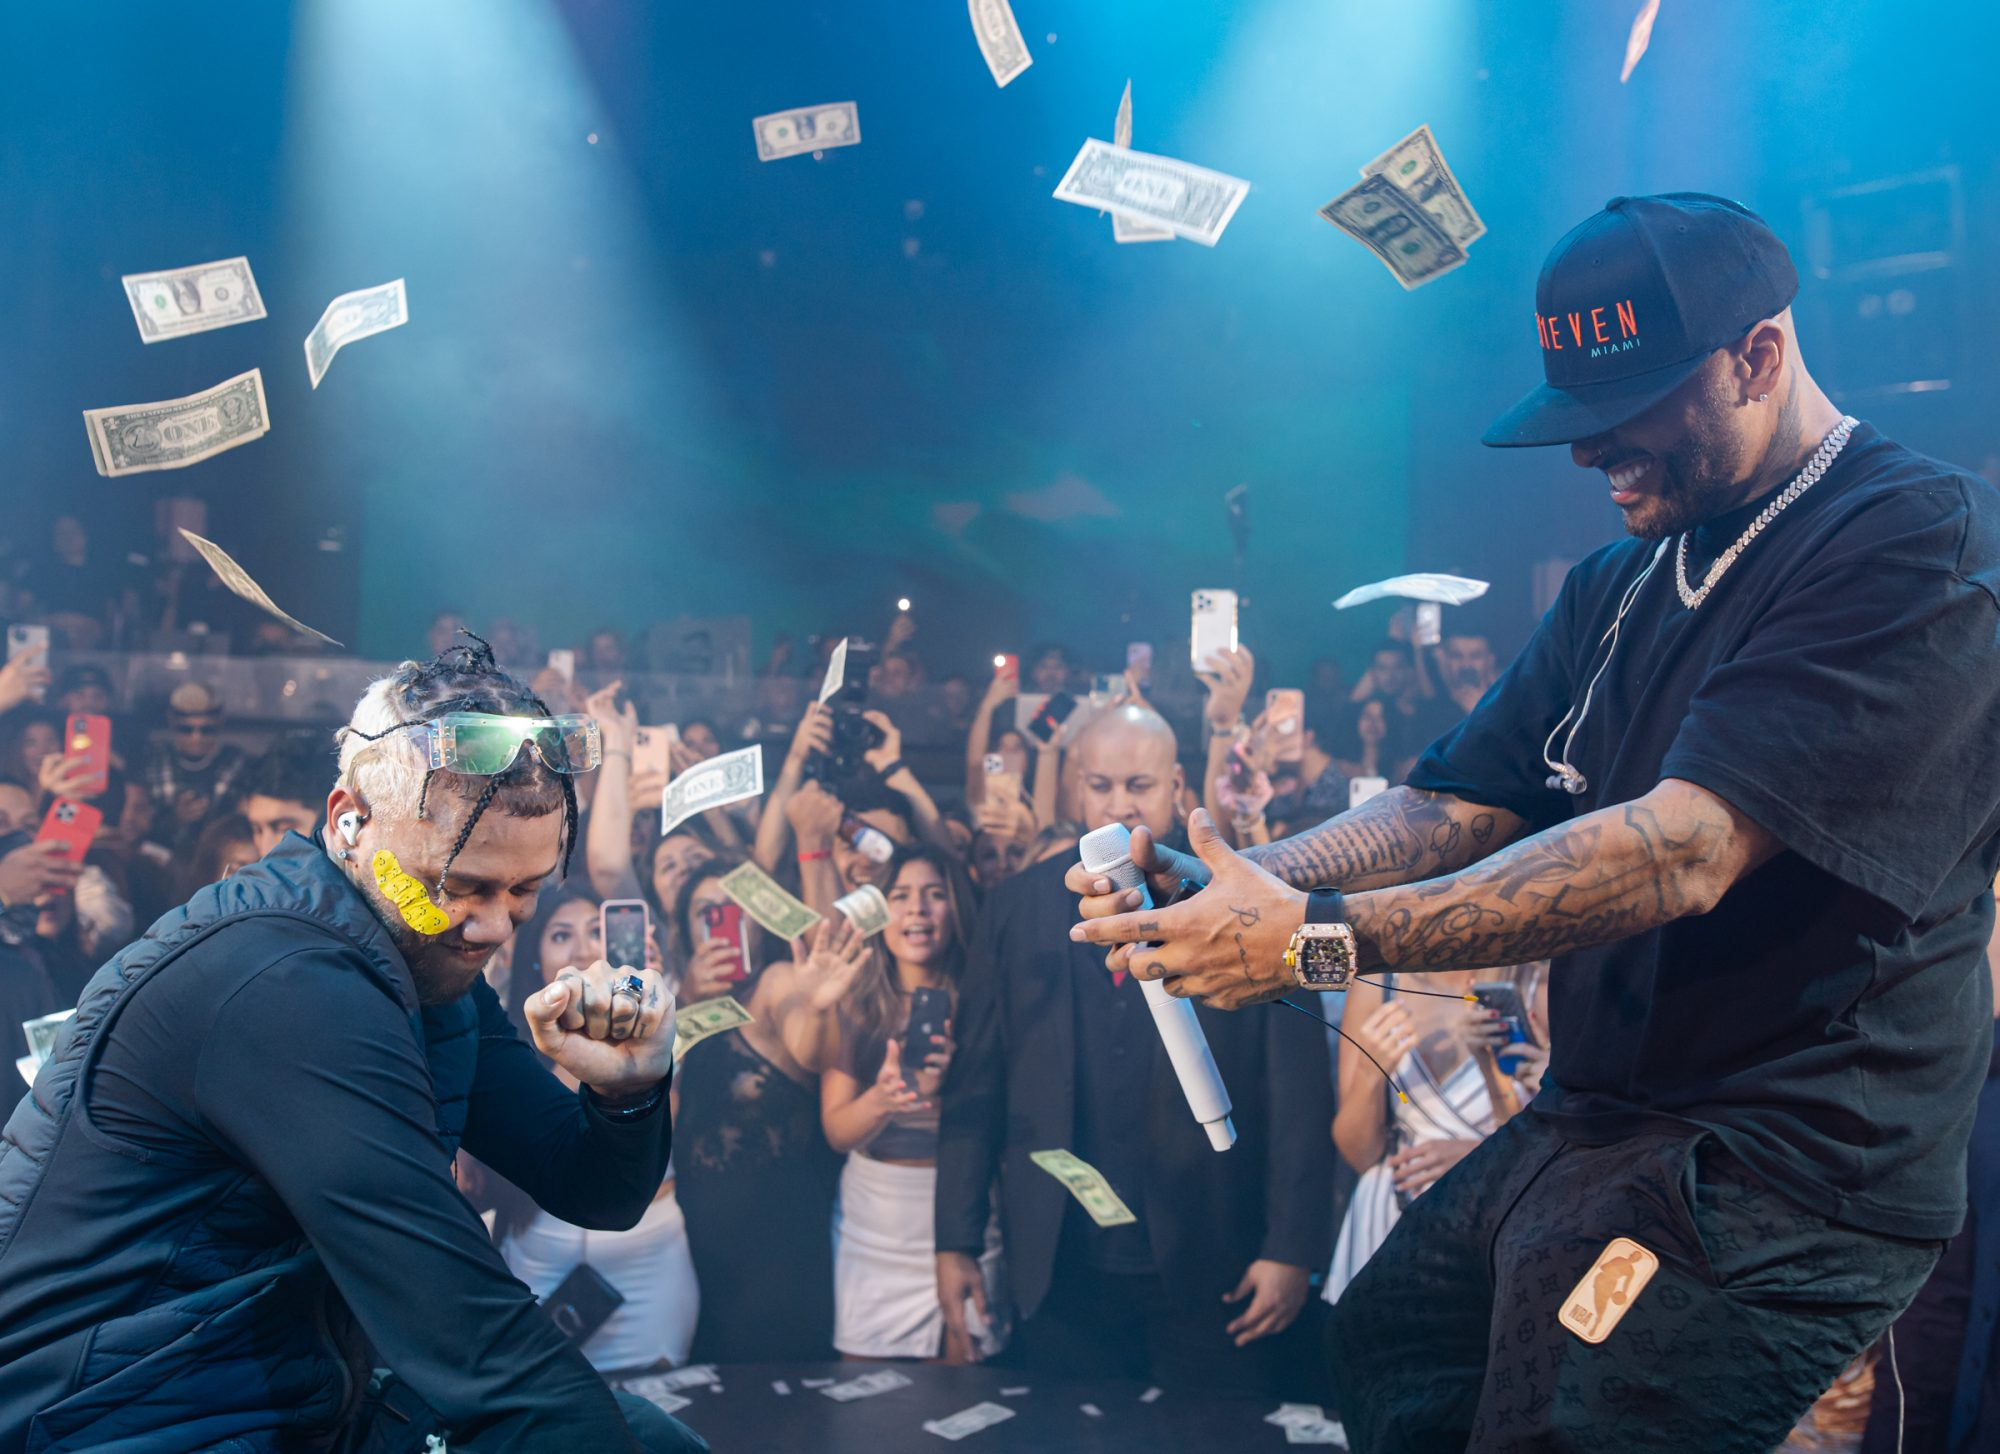 Nicky Jam and Jhay Cortez performed at E11EVEN Miami on Sunday night before enjoying E11EVEN Vodka with friends